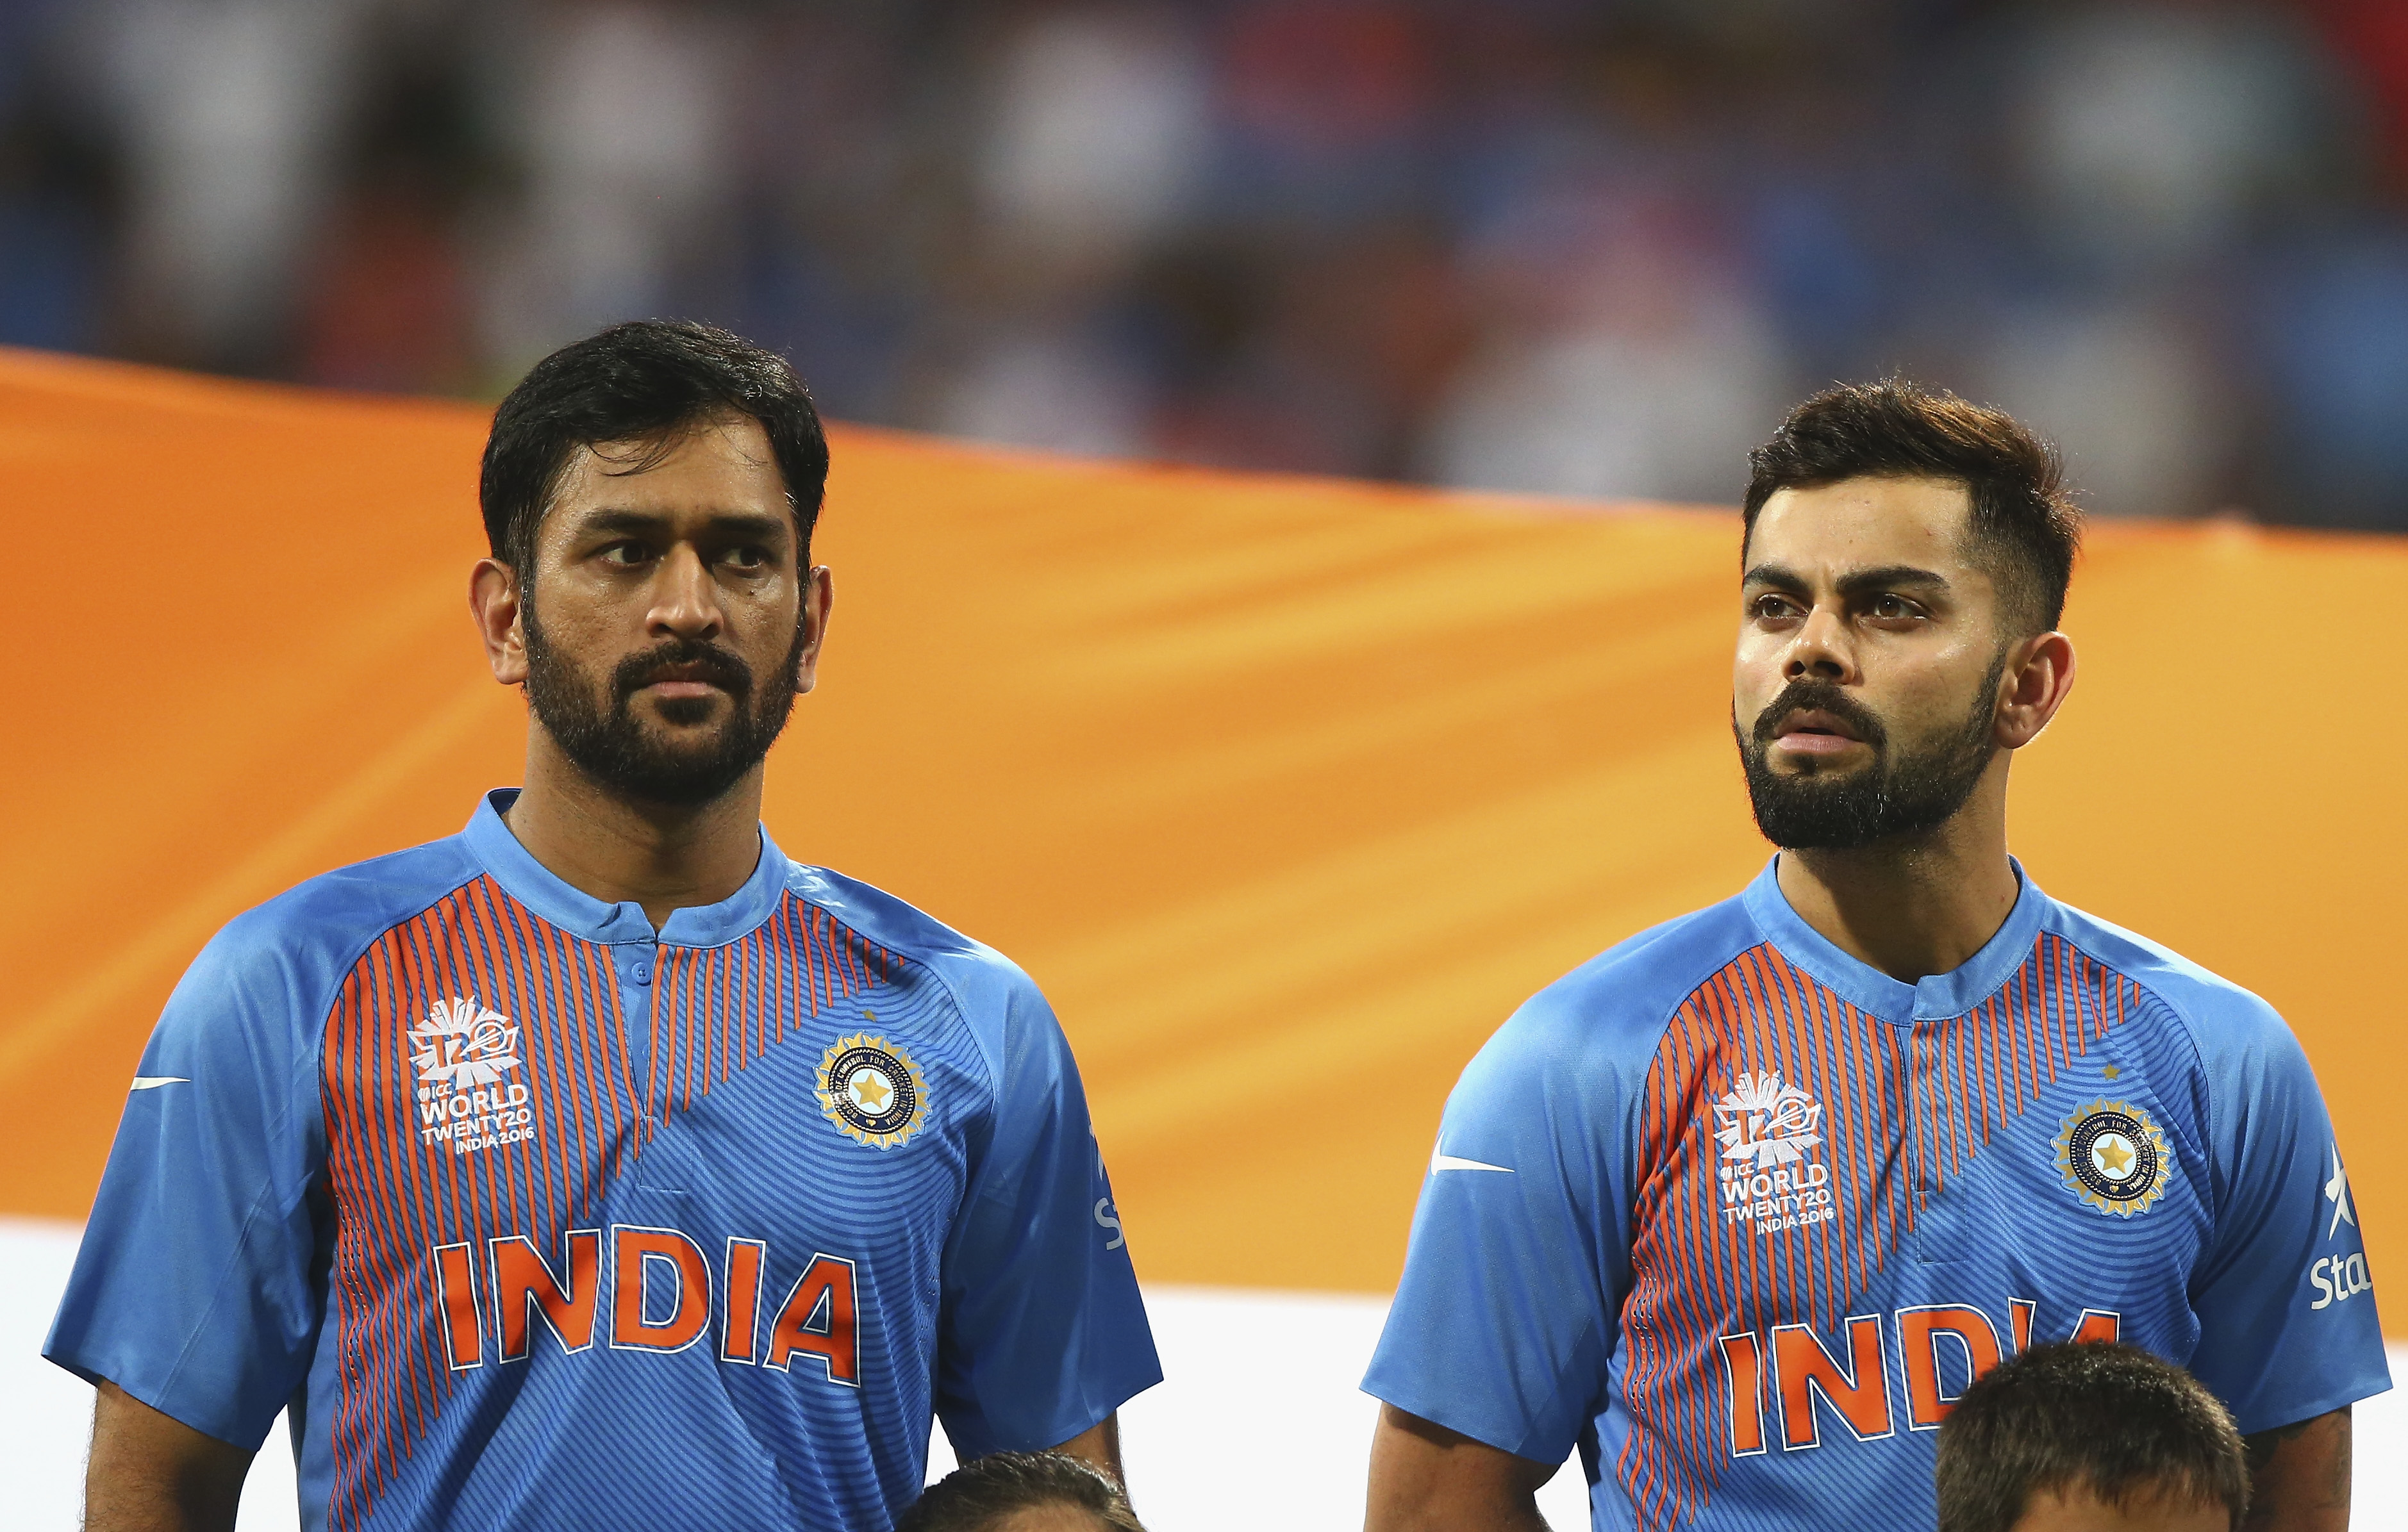 Kohli and Dhoni sing the national anthem before the match | Getty